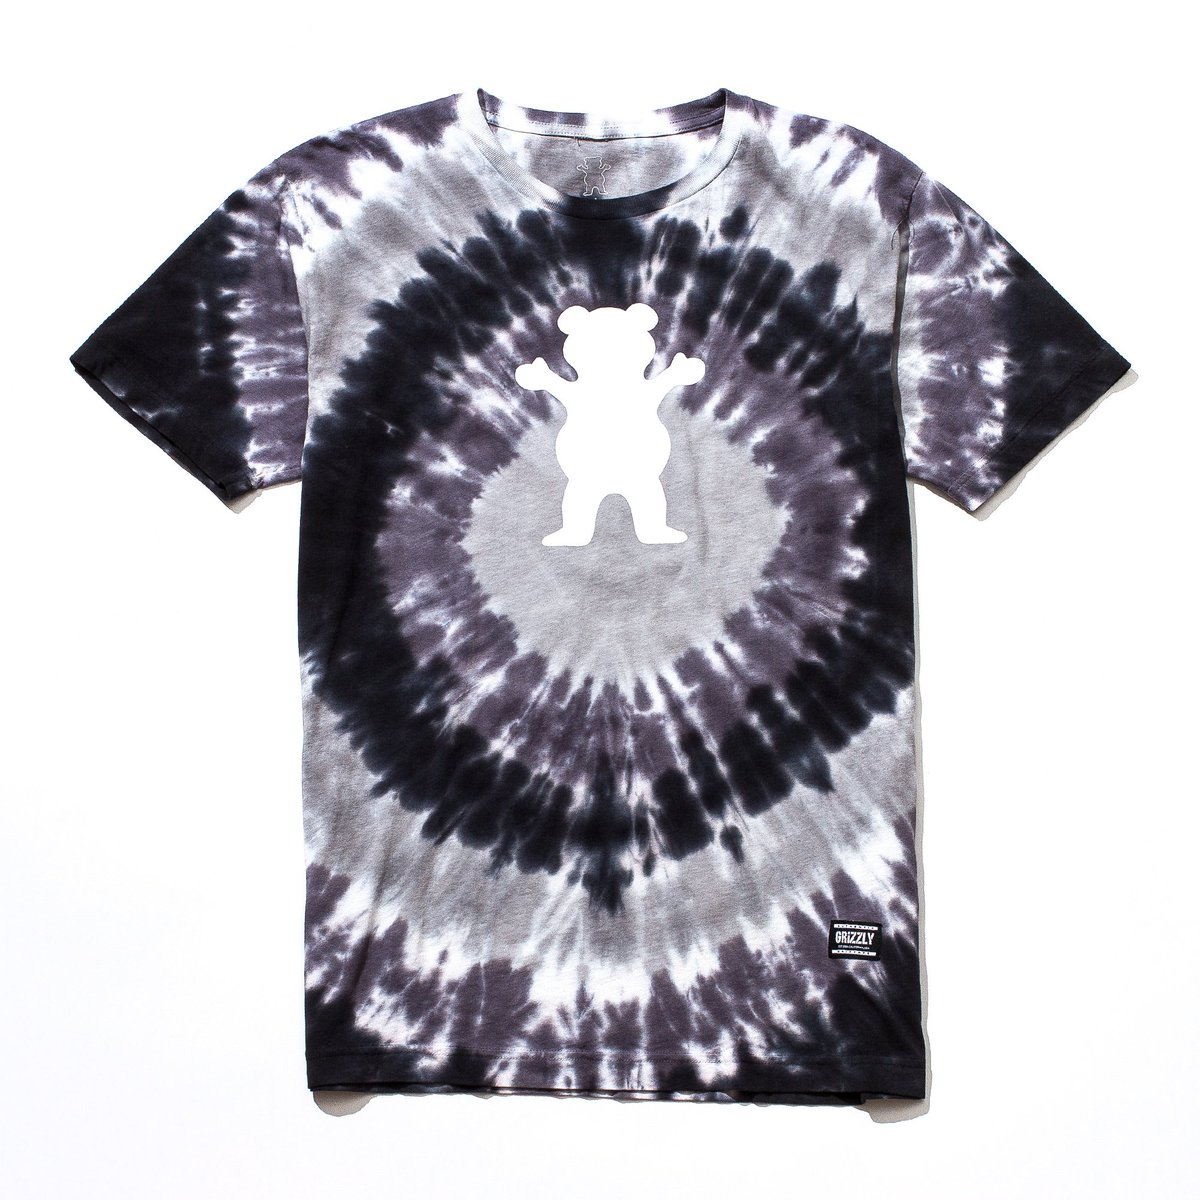 4d743c82 Eclipse Tie-Dye Tees are back in stock, head over to our Flagship or pick 1  up online now ...